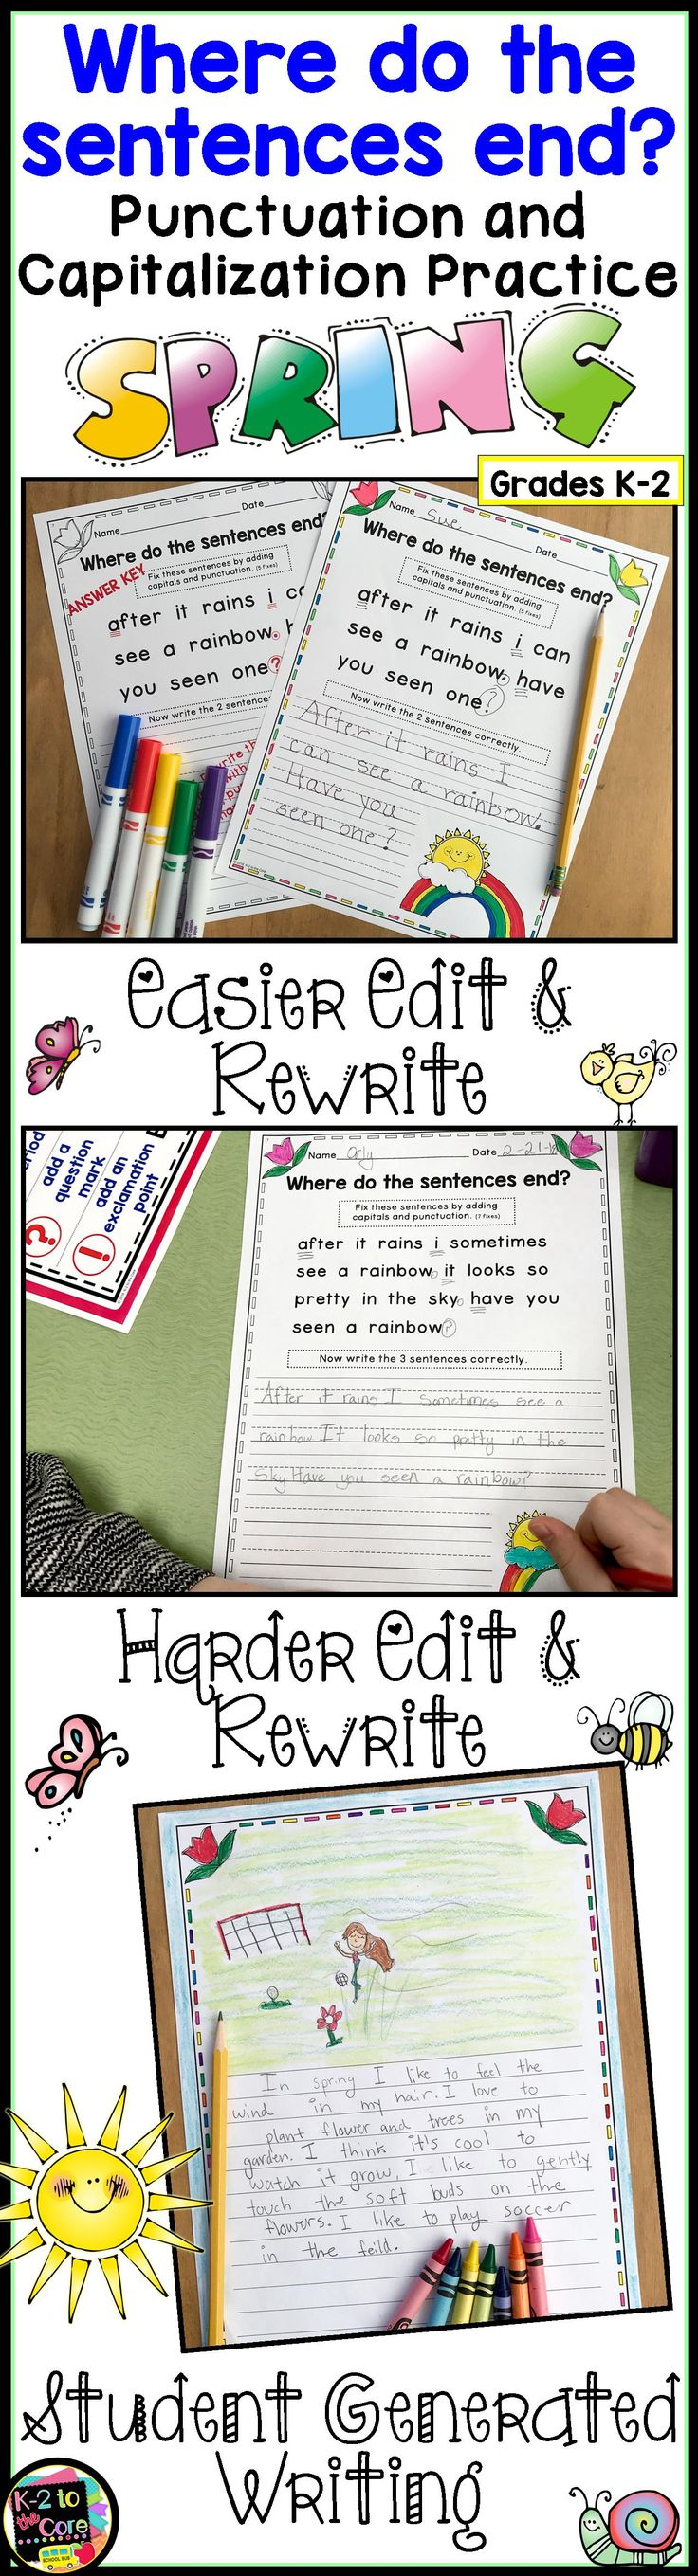 Provide your kindergarten, first, or second grade students with reading, writing, capitalization, and punctuation practice with these NO PREP differentiated (three levels) editing sheets. Each page has 2, 3, or 4 springtime themed sentences with missing capitals and punctuation. Your students' job is to figure out where the sentences end, edit the sentences, and then rewrite them with correct capitalization and punctuation, as well as neat handwriting. Click to find out more!